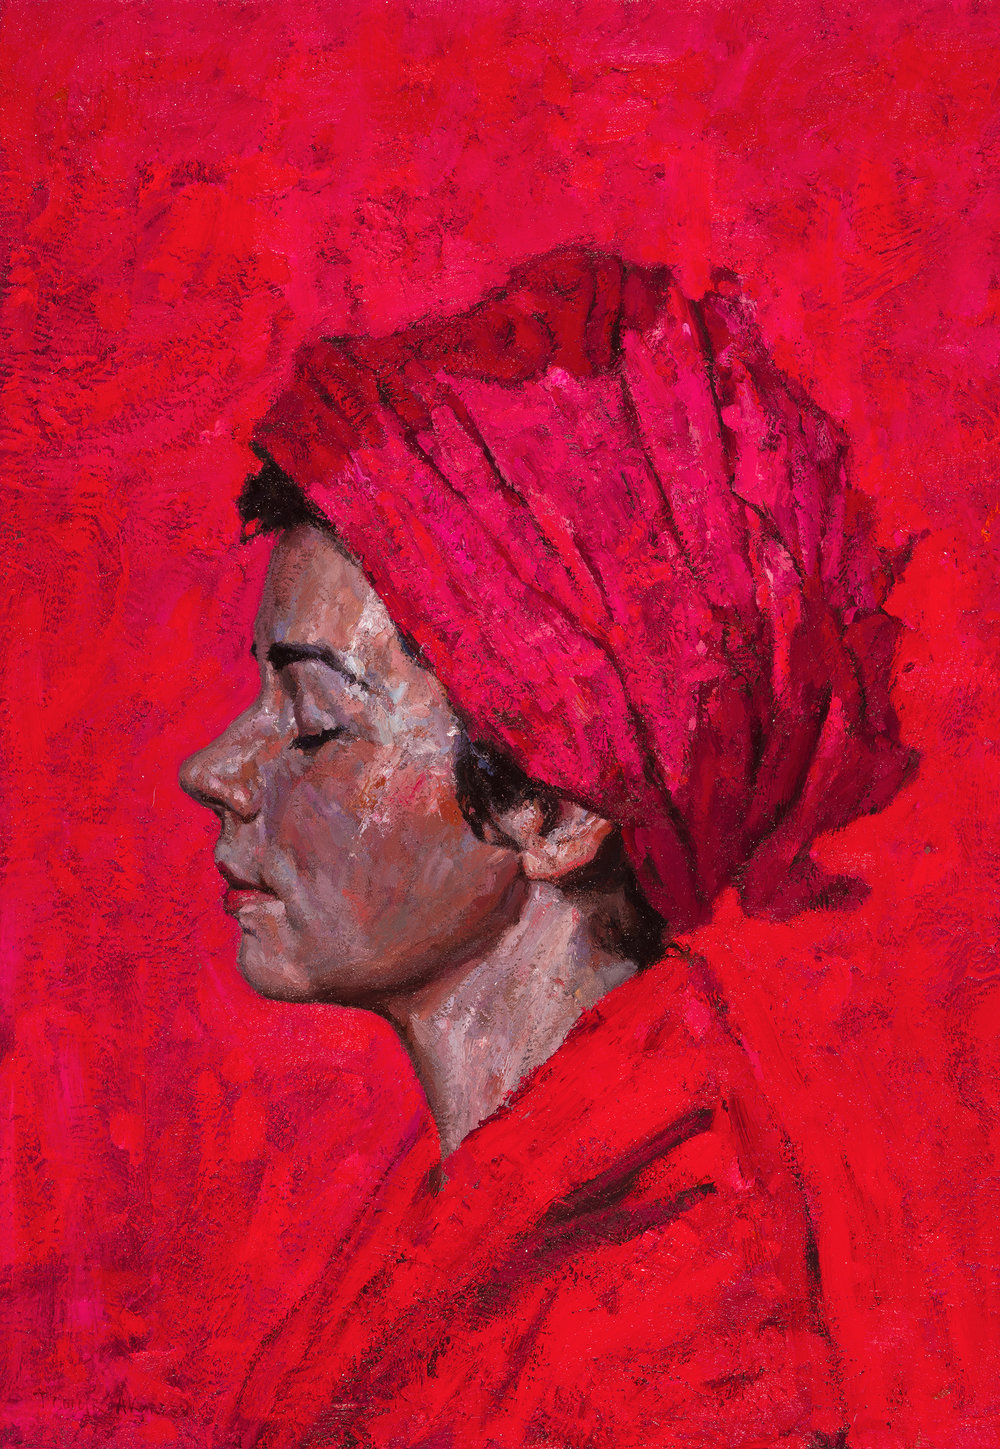 "Timur Akhriev Title: Red on Red Size: 14"" x 20"" Oil on Linen  Price, Reatil, Framed: $2300. Year: 2016"